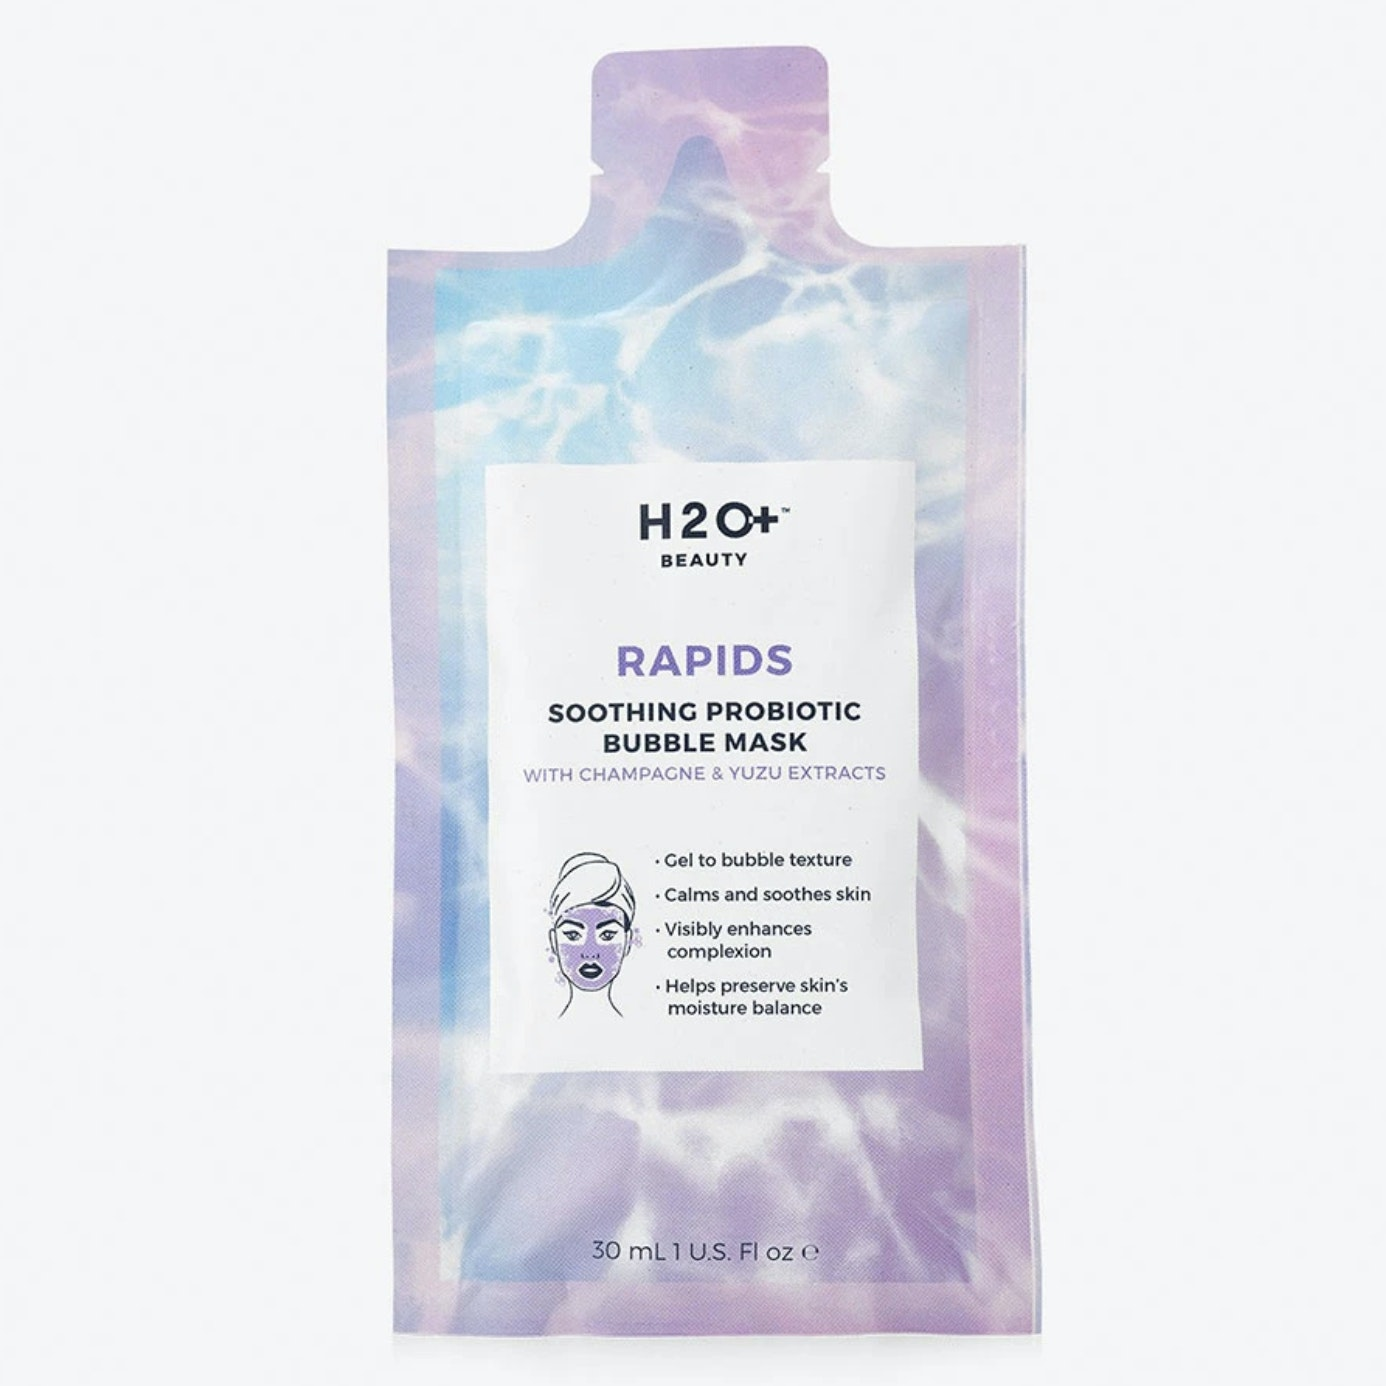 H2O+ memorial day weekend sale